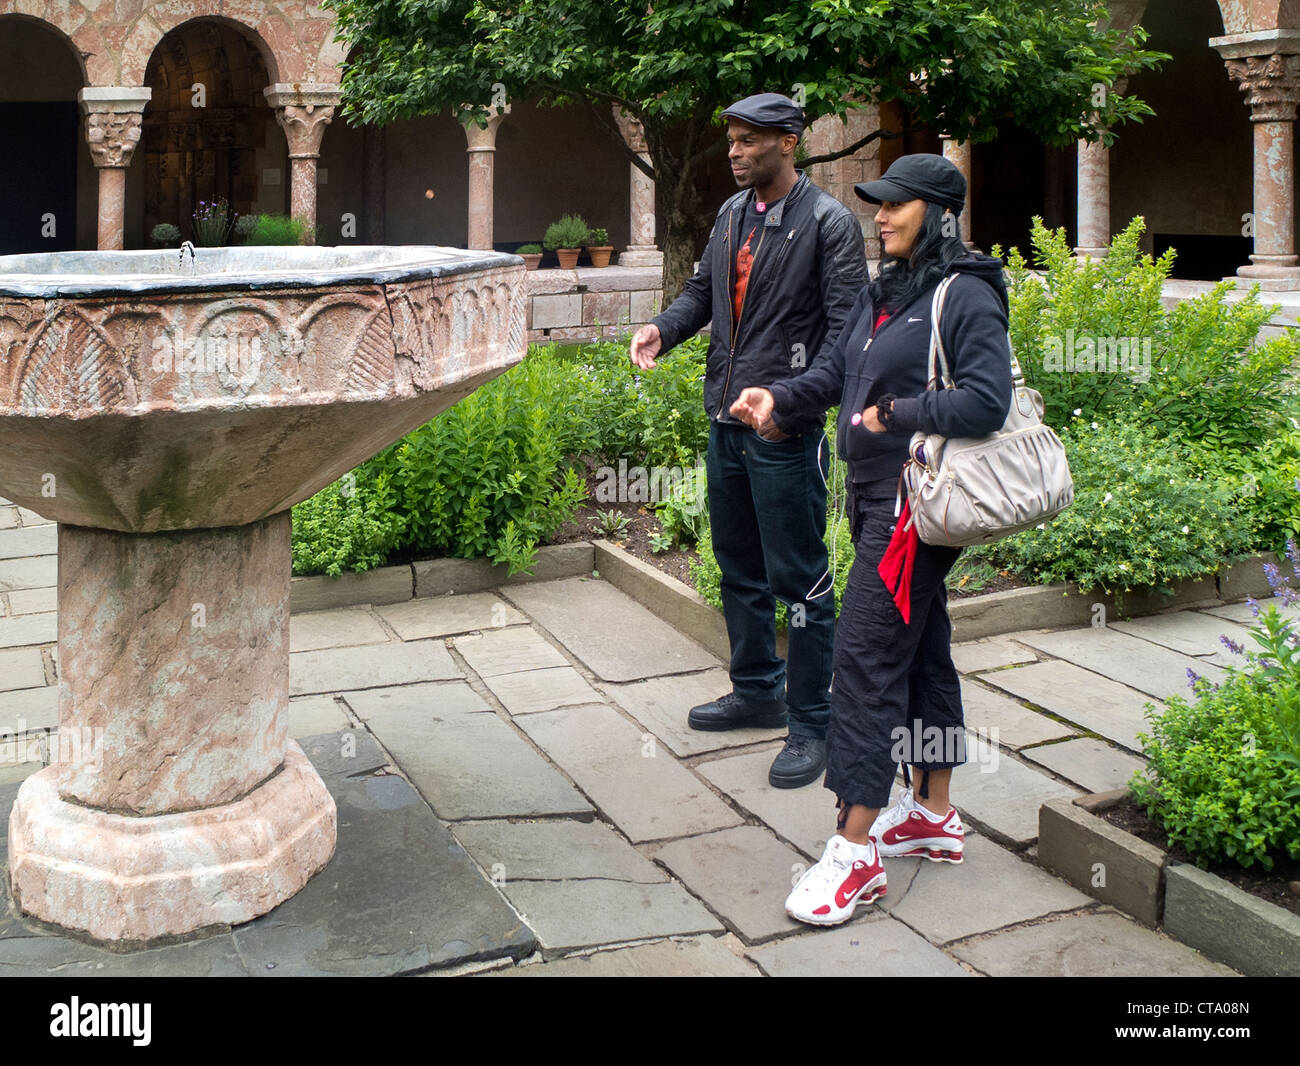 An African-American couple make a wish as they toss a penny in a medieval fountain at The Cloisters Museum in New - Stock Image